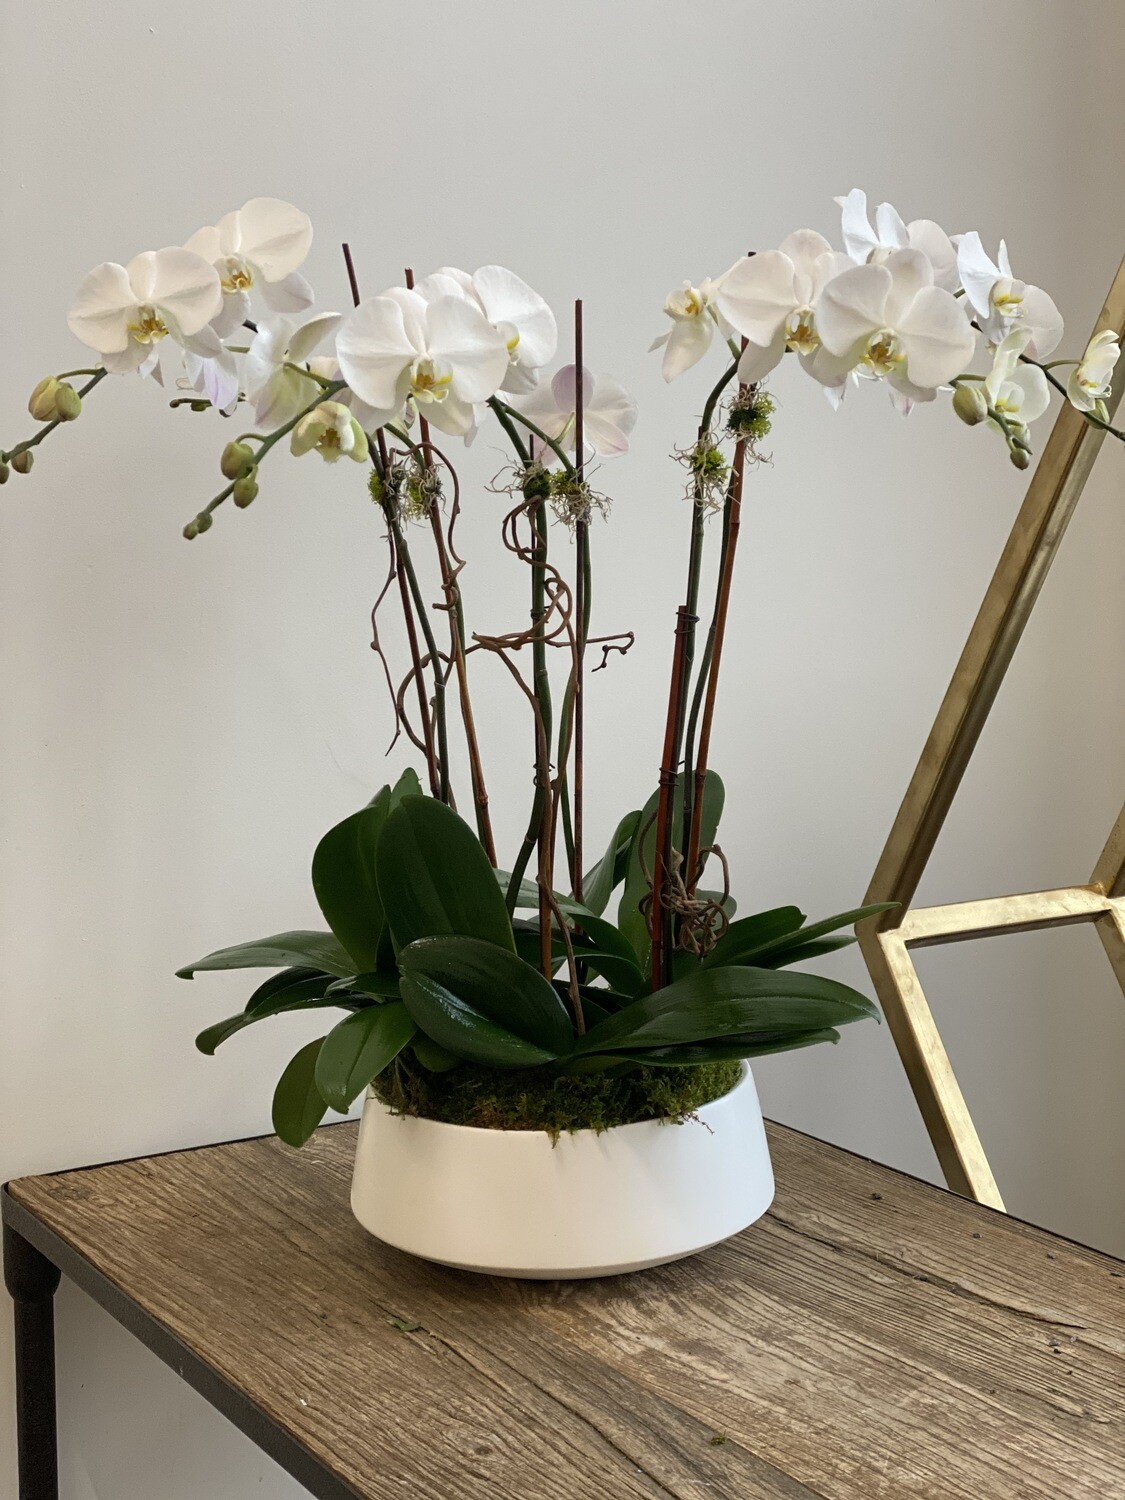 6 Stem White Orchid